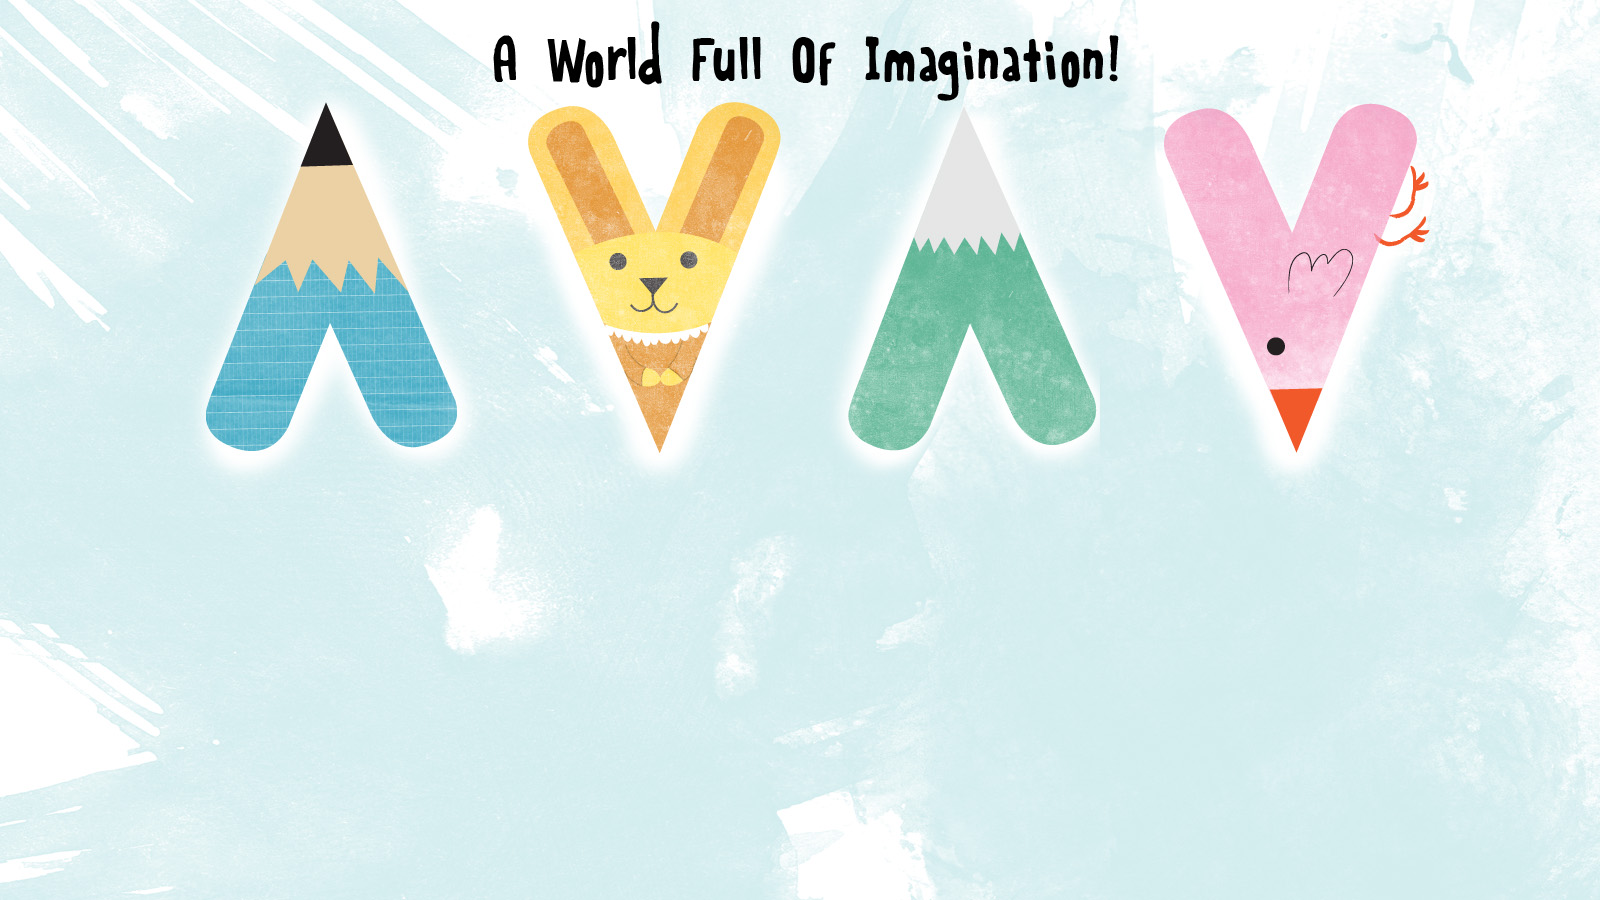 A world full of imagination